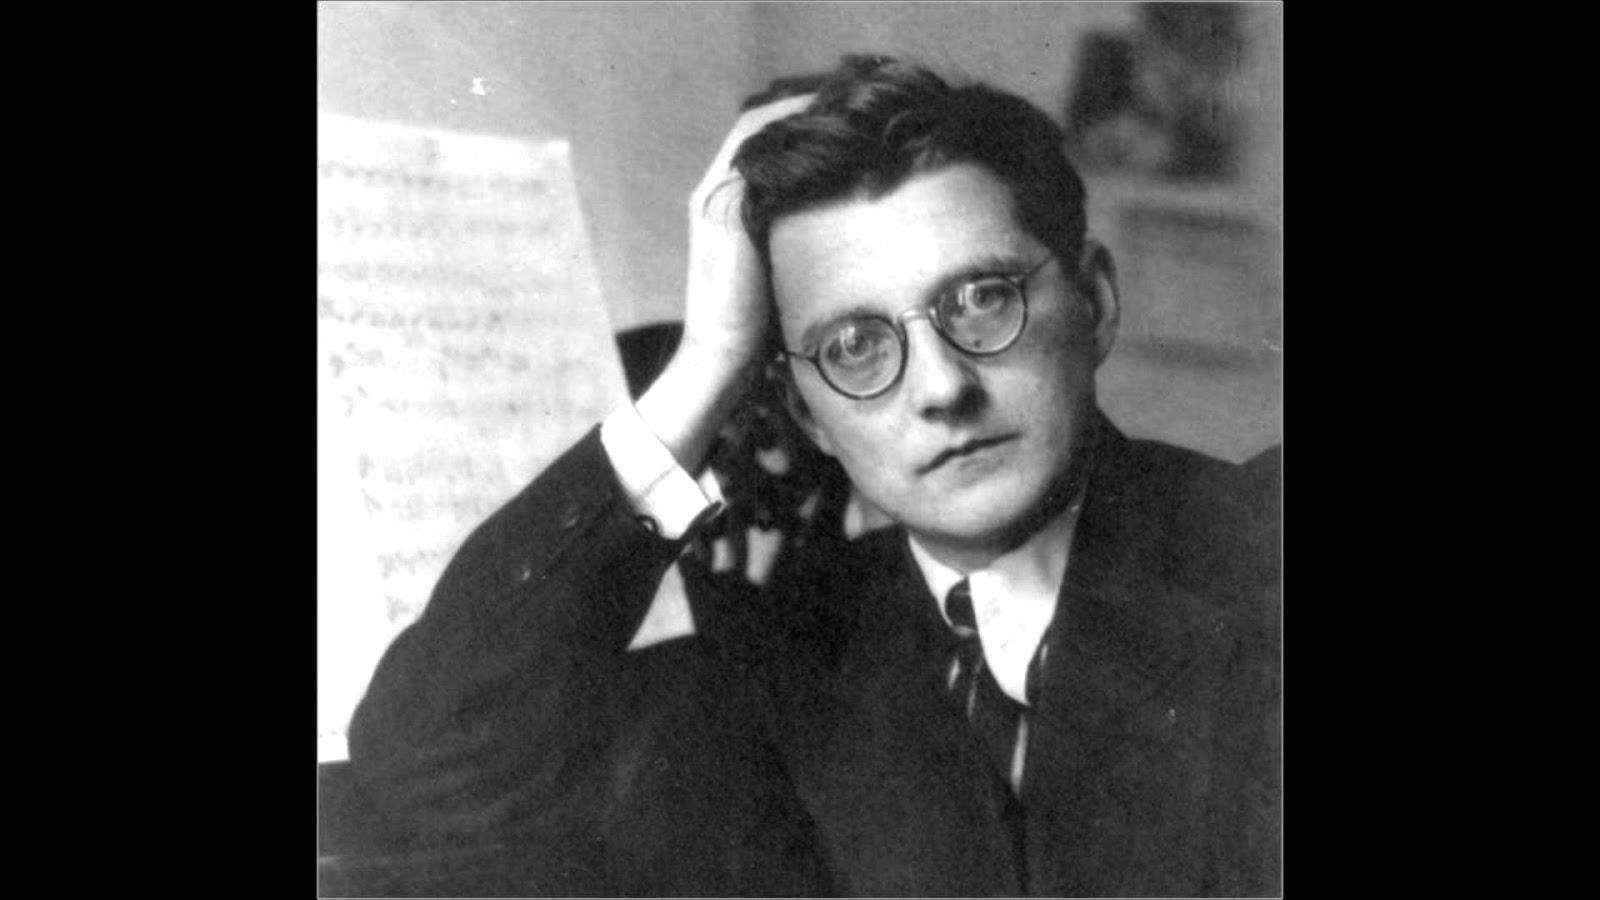 dimitri shostakovich essay Our new desktop experience was built to be your music destination listen to official albums & more.